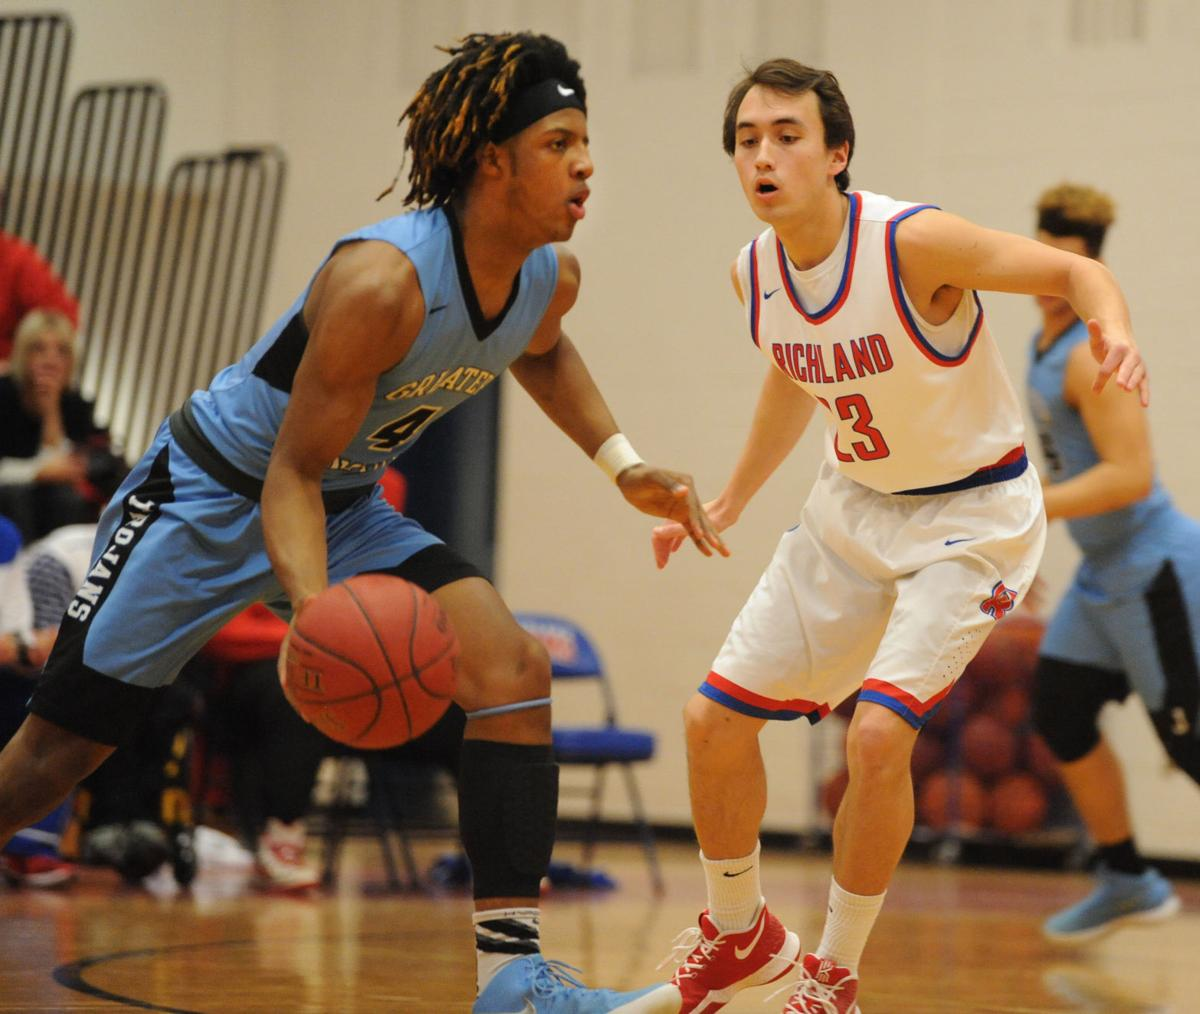 Laurel highlands boys preview greater johnstown faces bishop keyon kristyandbryce Image collections